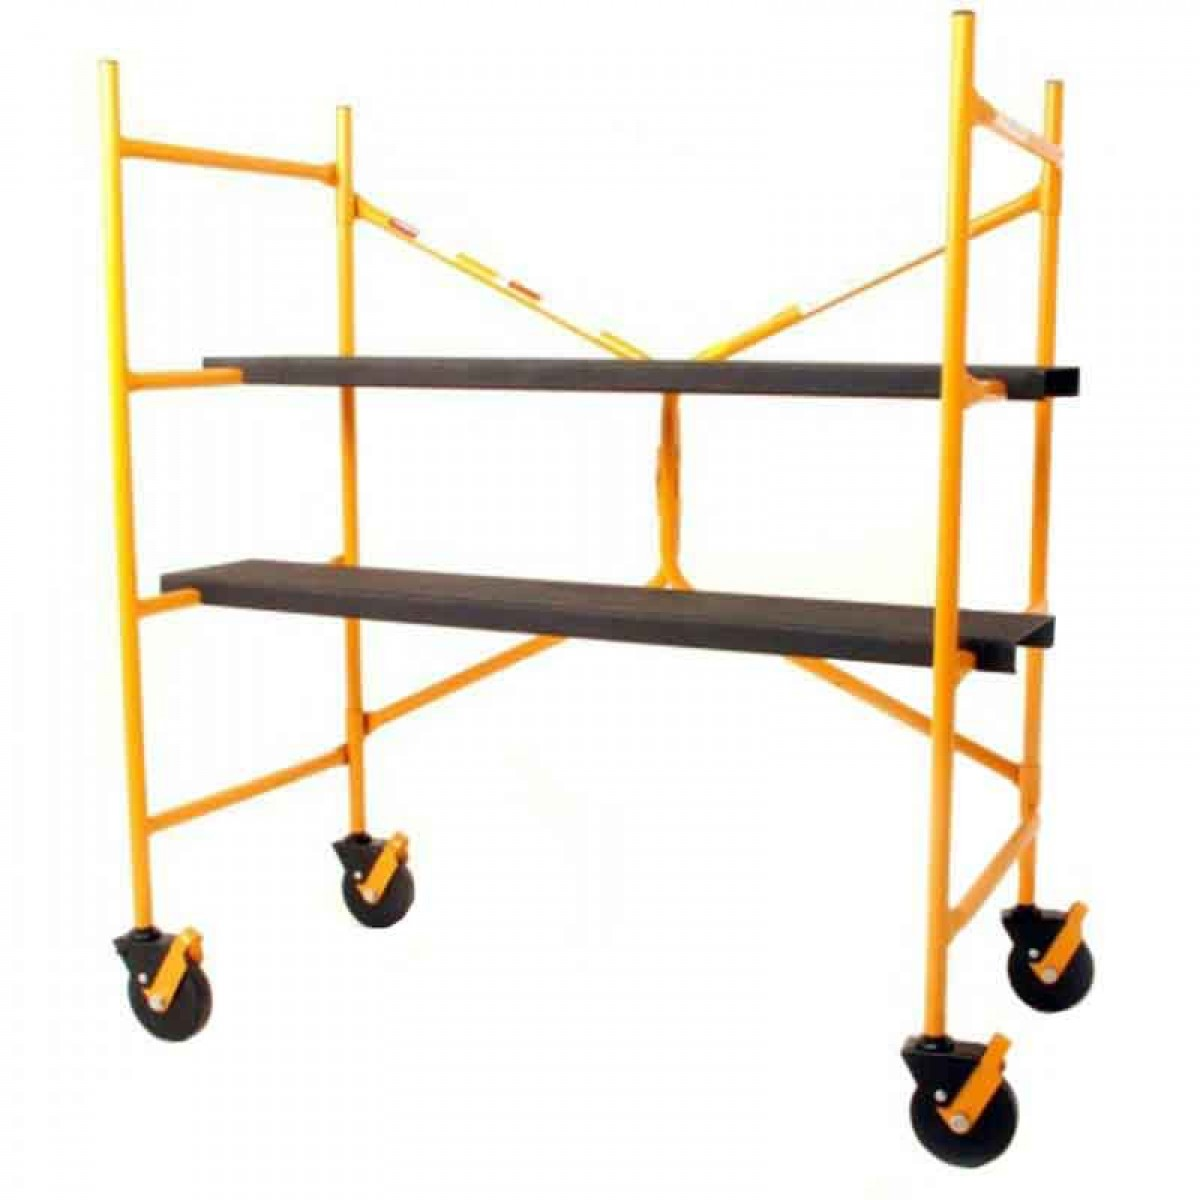 Perry Folding Scaffolding : Perry step up scaffold construction scaffolding for sale